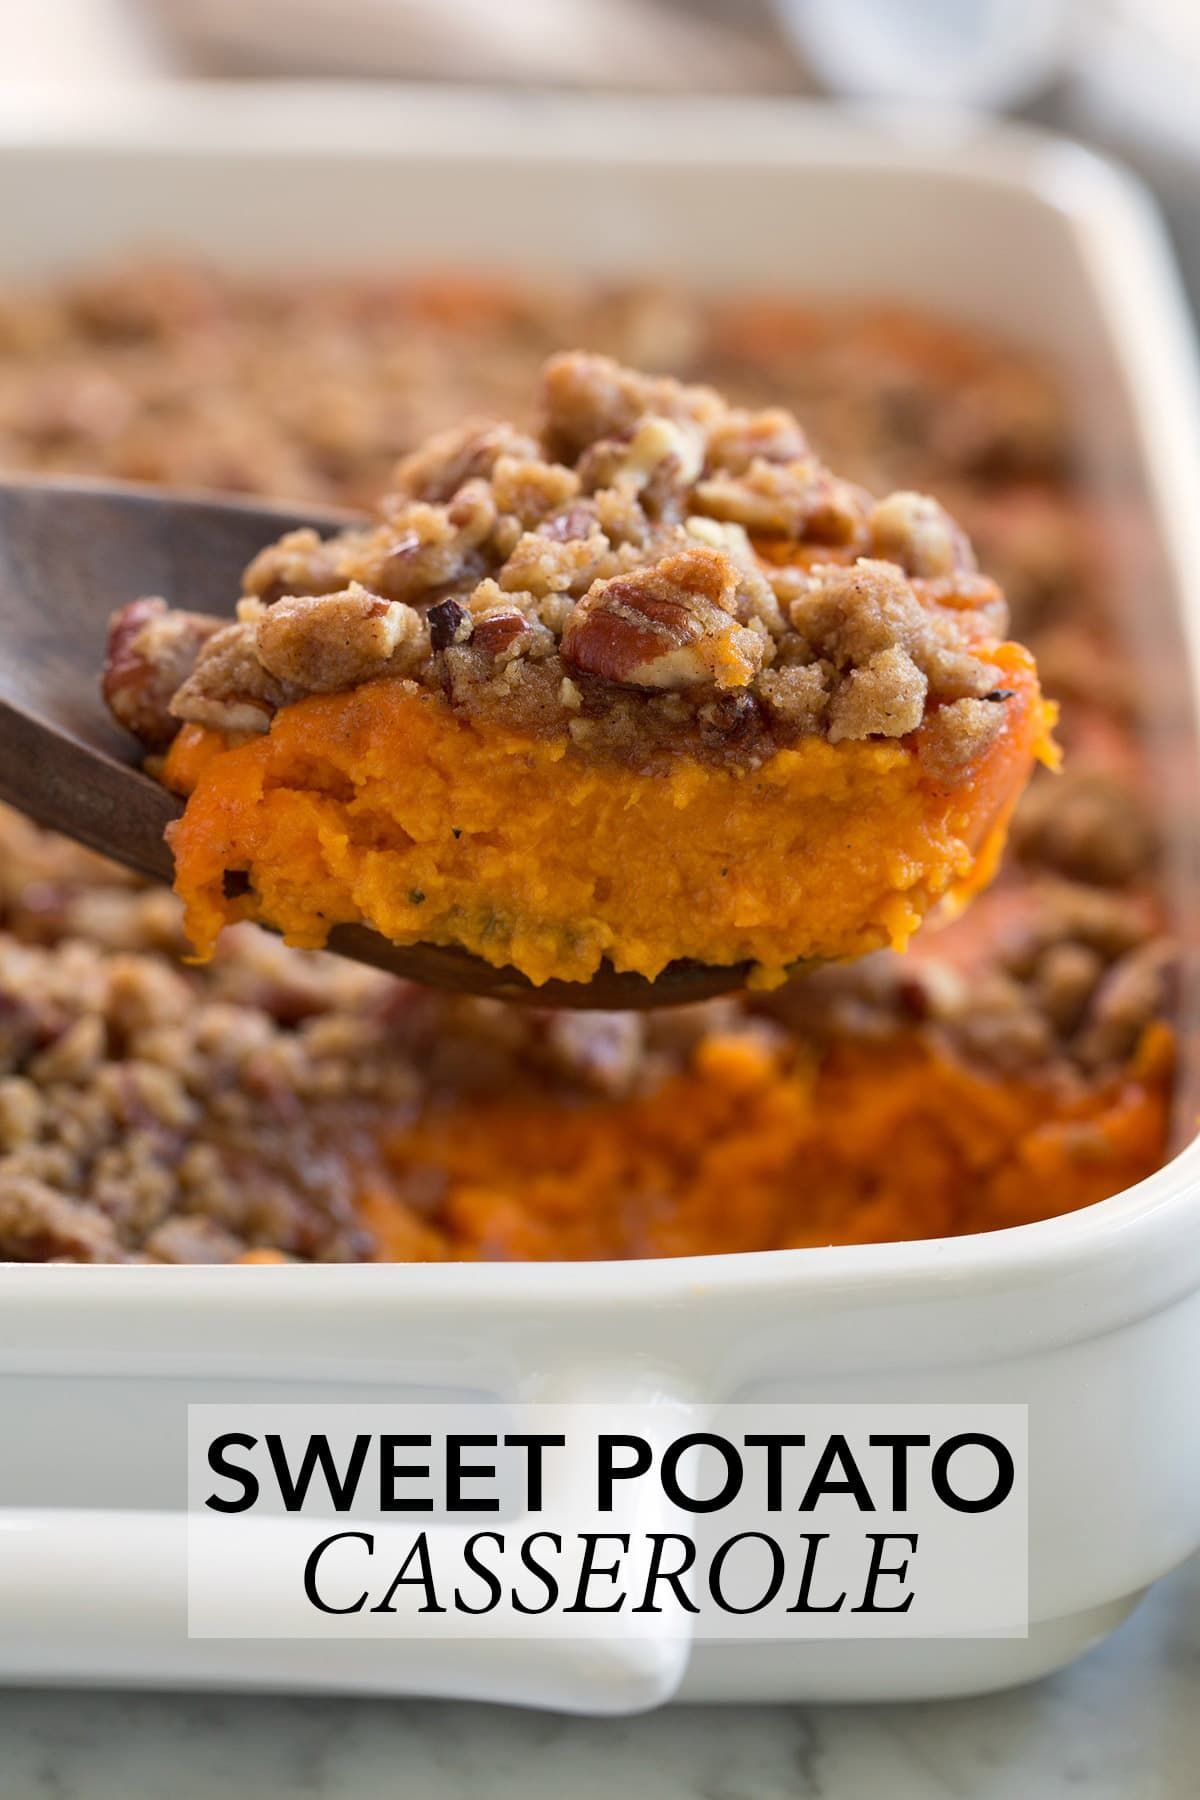 Sweet Potato Casserole {with Cinnamon Pecan Topping} - Cooking Classy